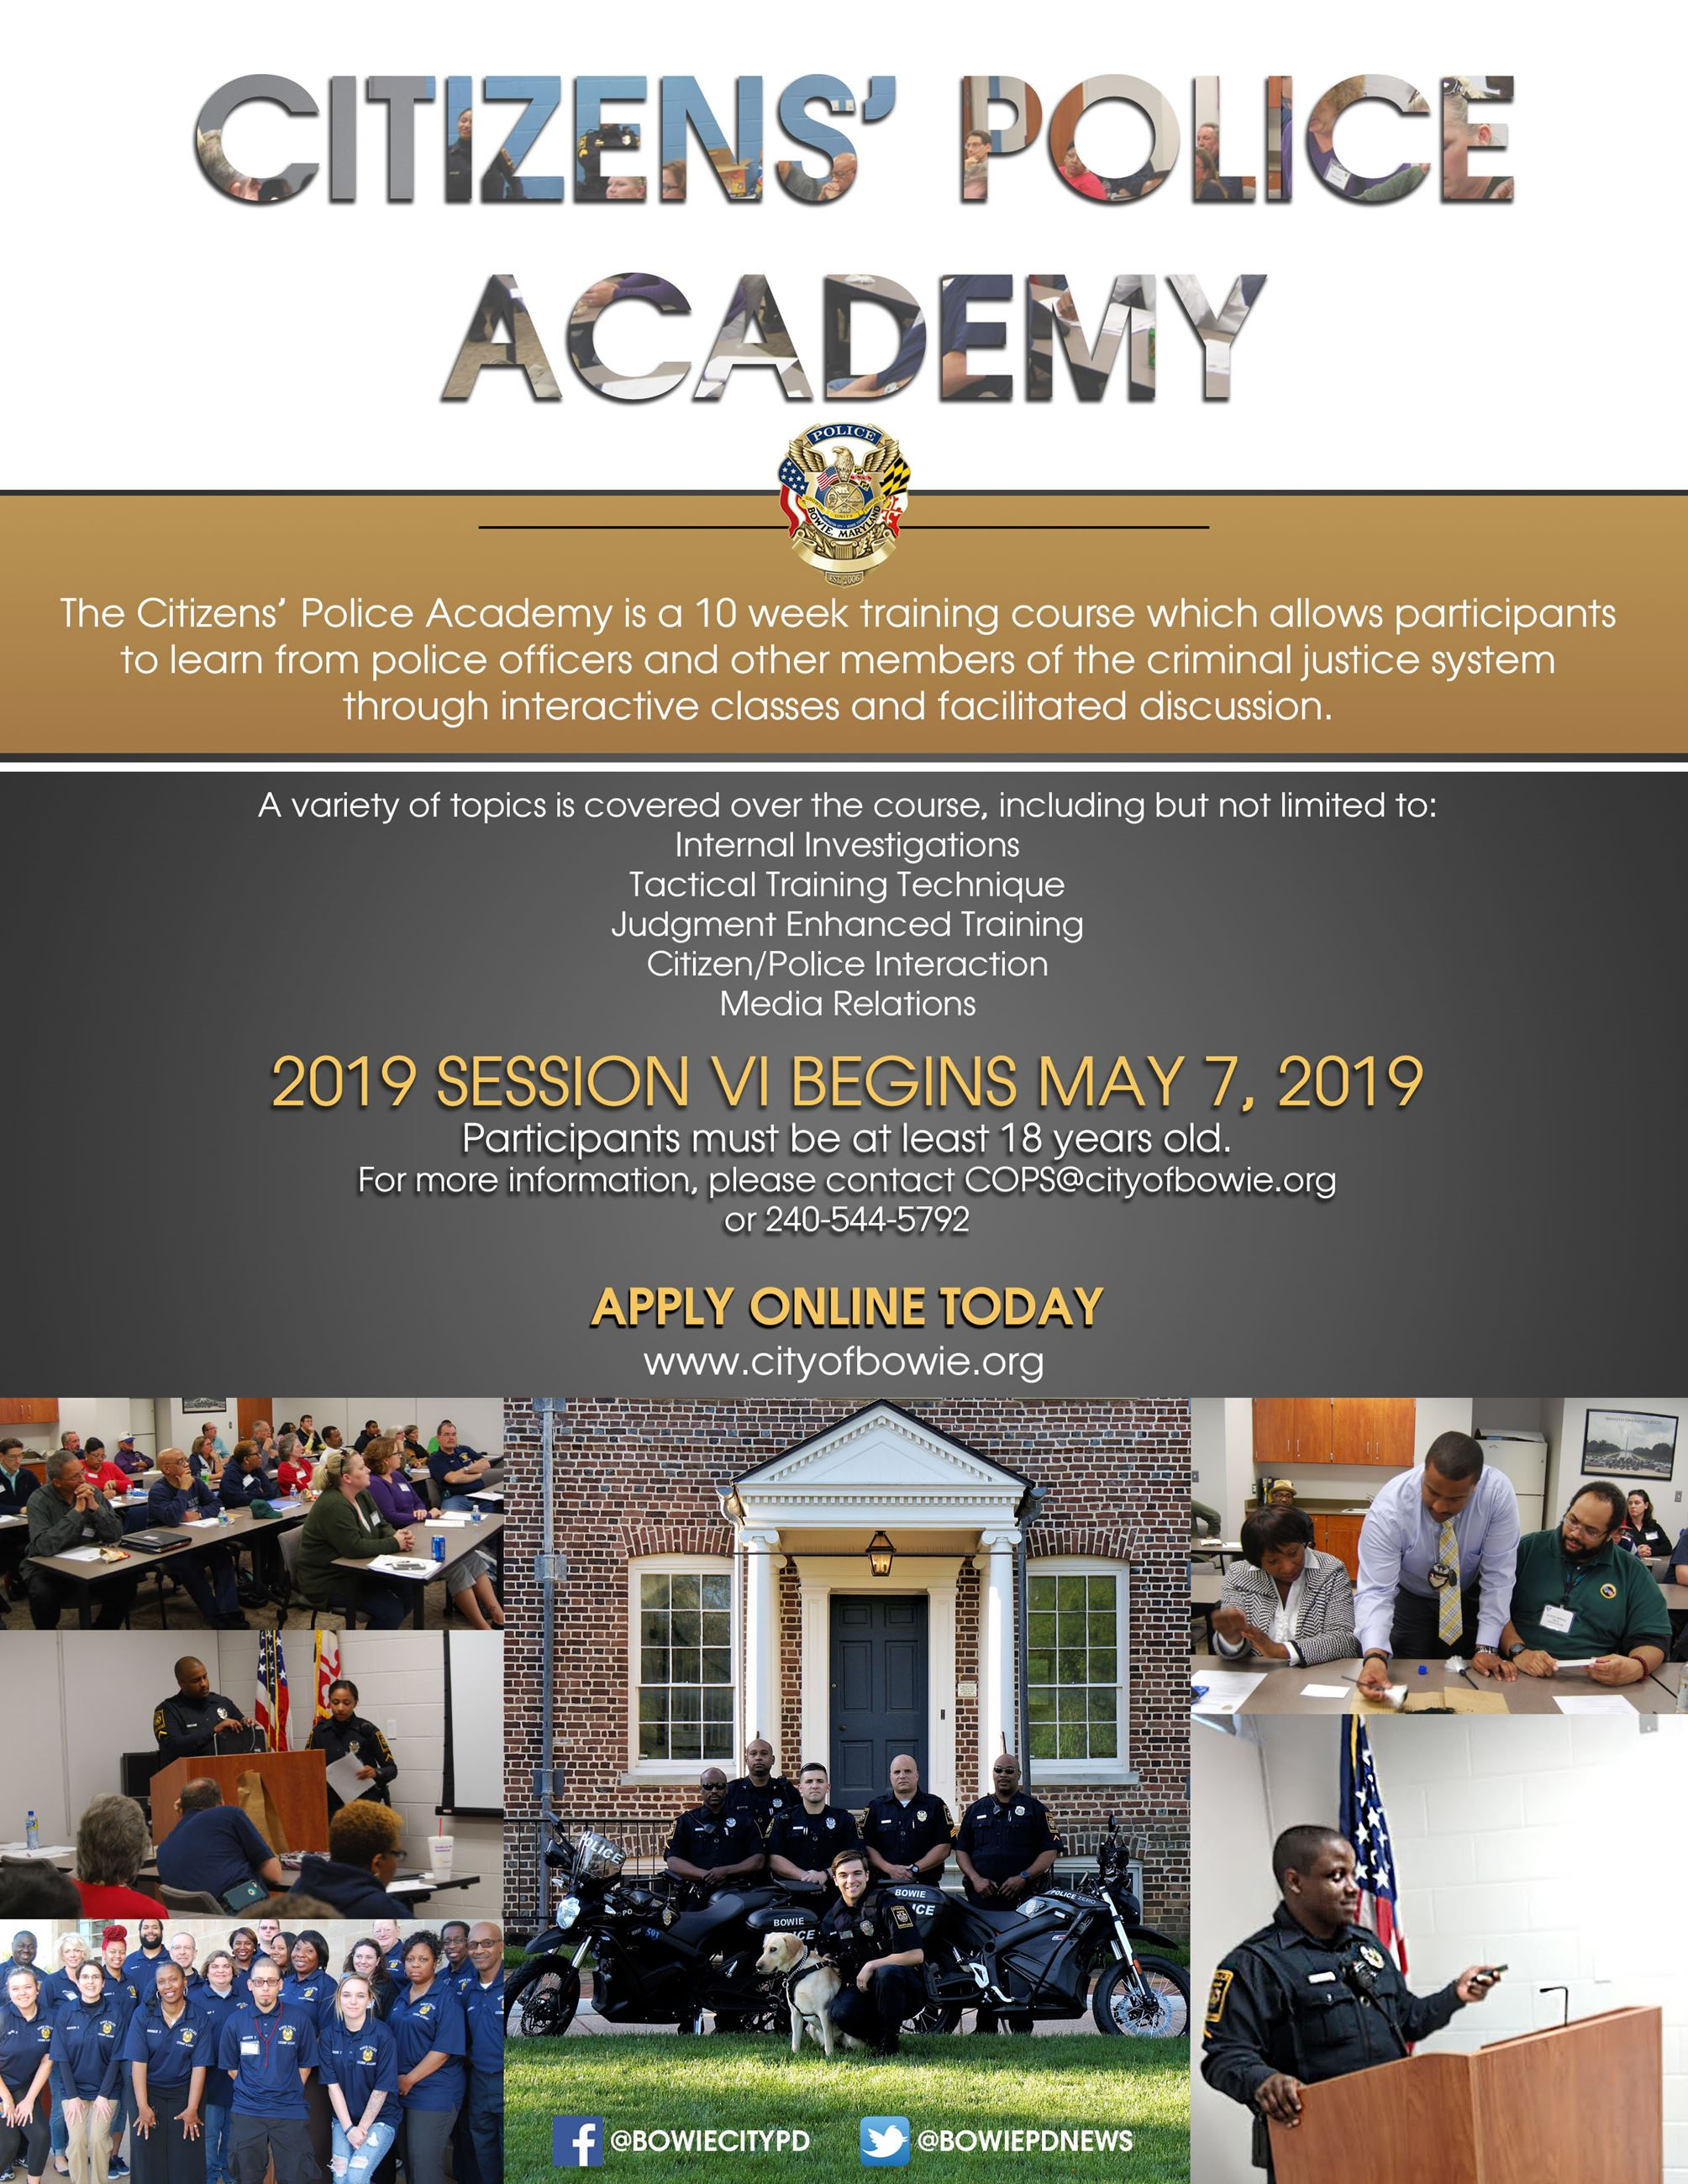 Citizens' Police Academy | Bowie, MD - Official Website